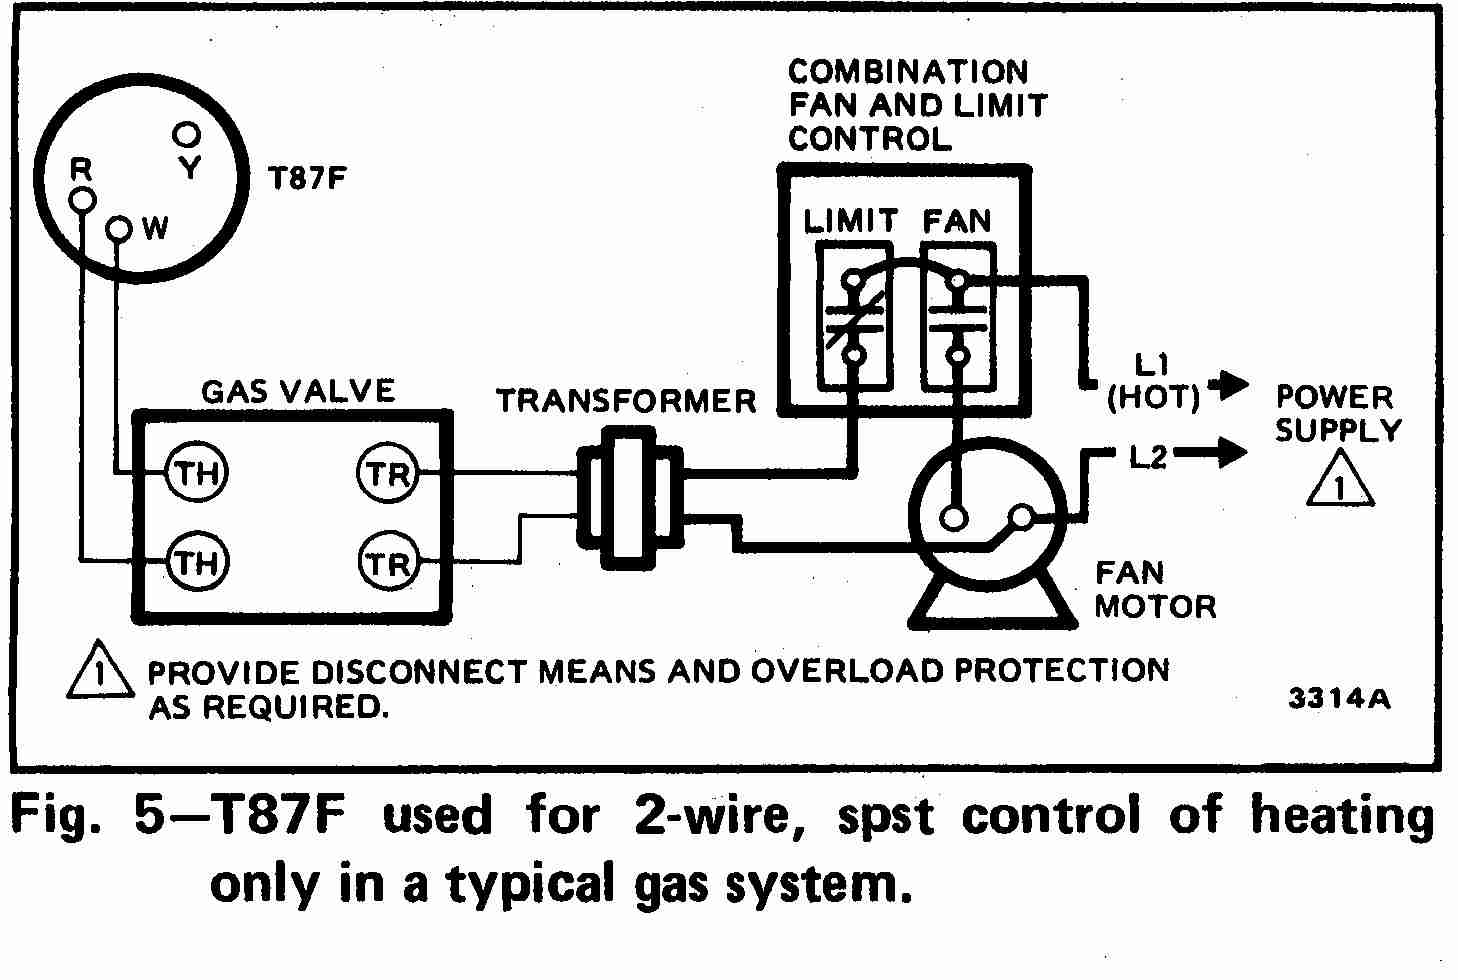 guide to wiring connections for room thermostats, Wiring diagram